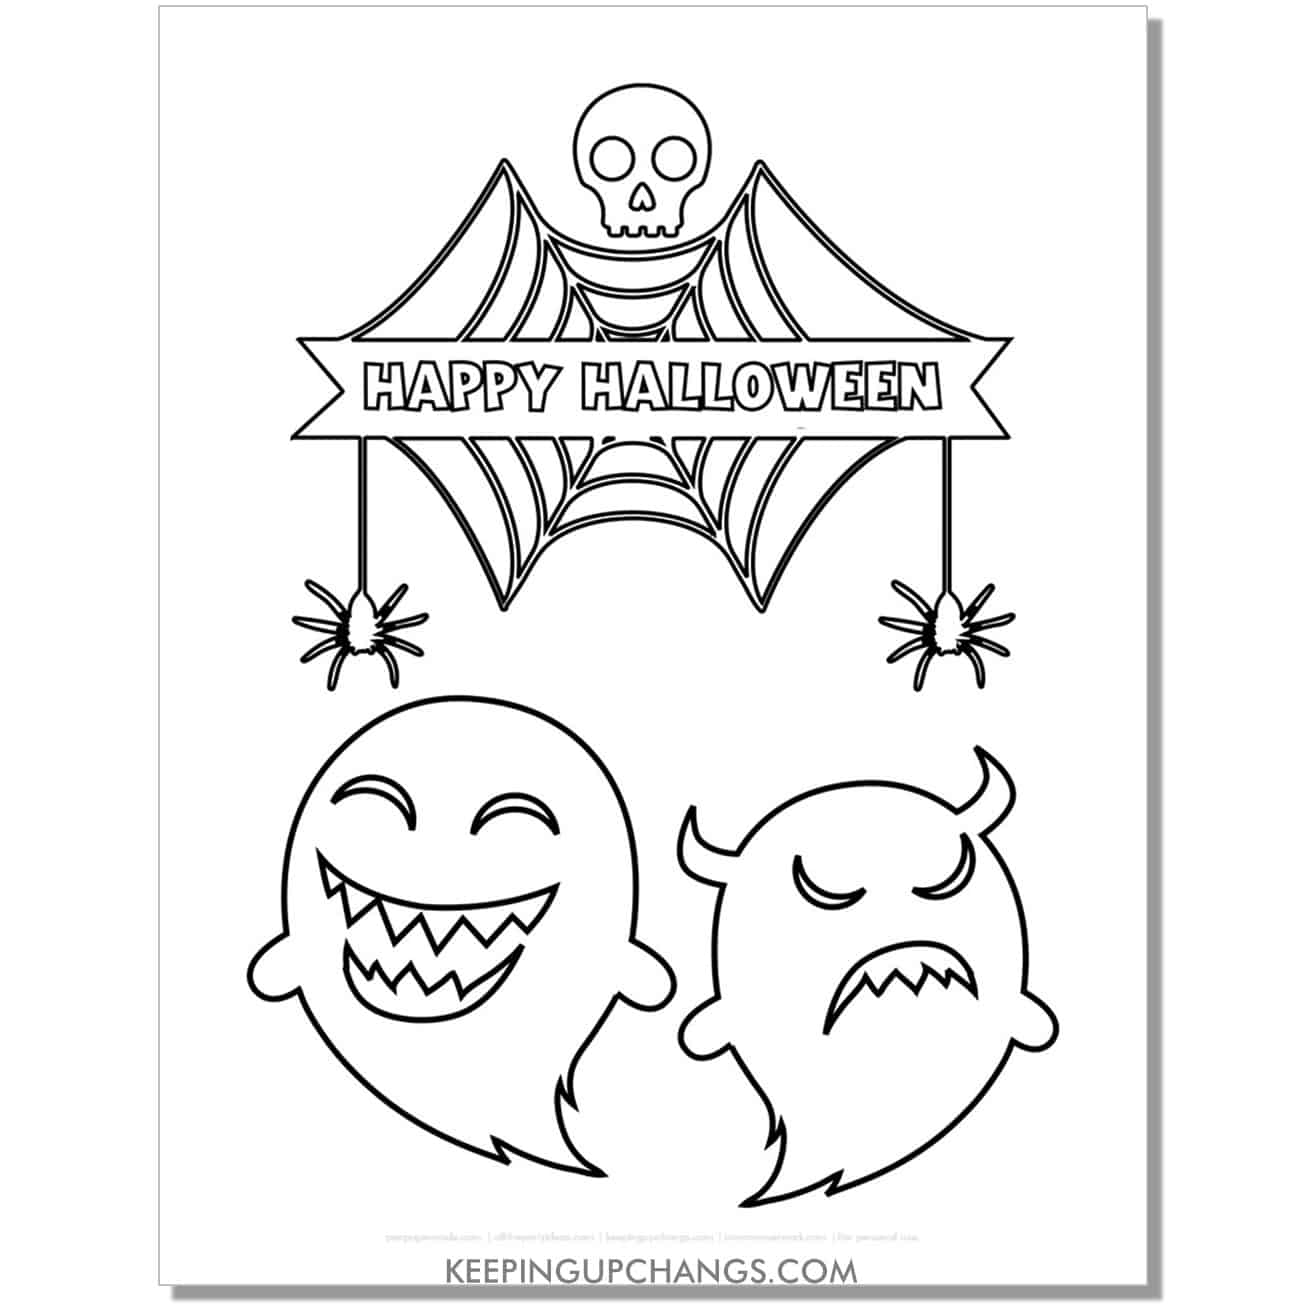 free happy halloween angry ghost spider and skull coloring page.